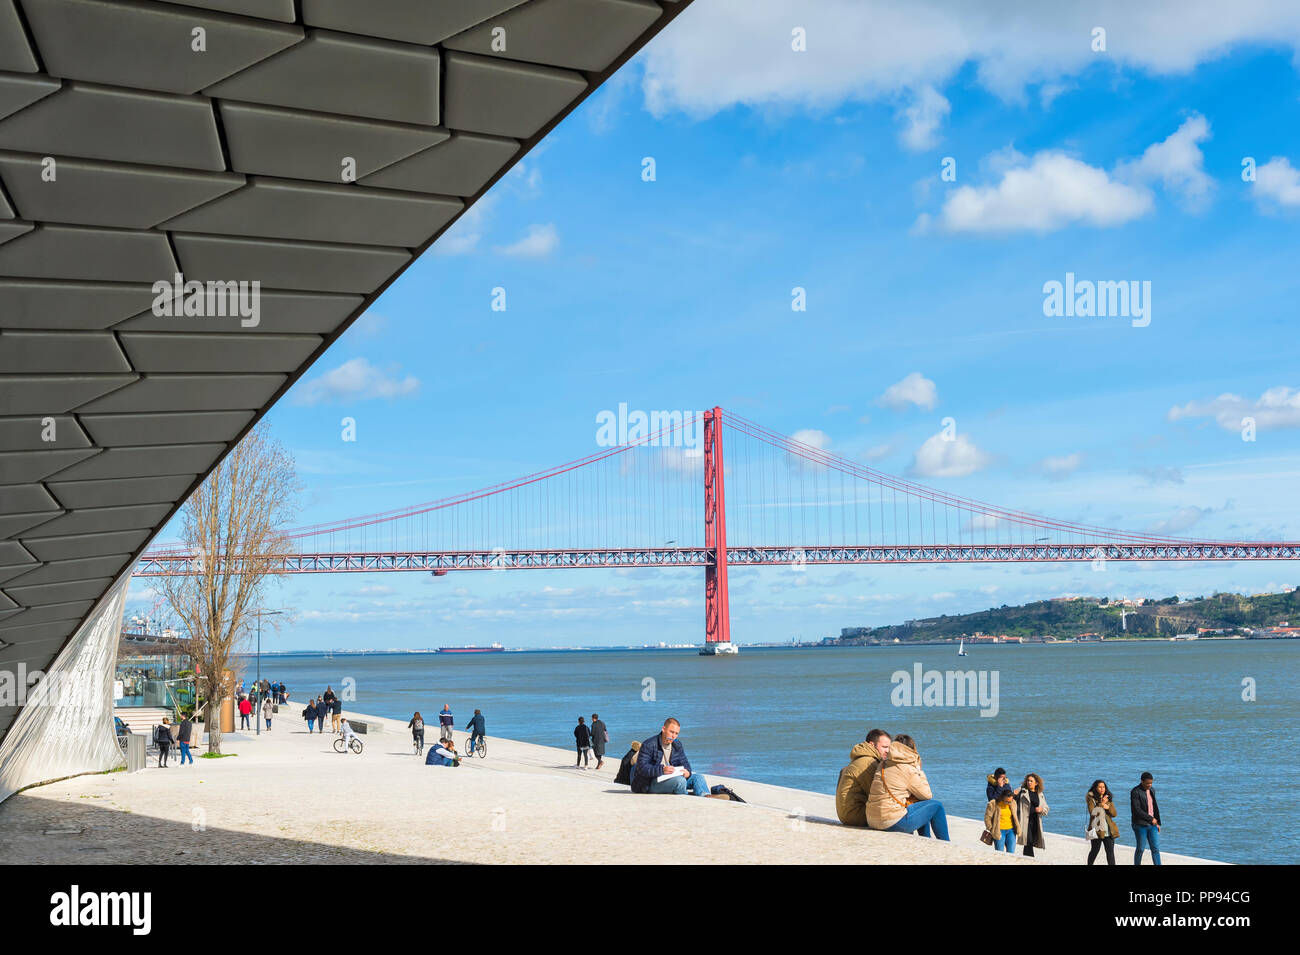 25 April Bridge, former Salazar bridge, over the Tagus river viewed from the MAAT – Museum of Art, Architecture and Technology, Lisbon, Portugal - Stock Image